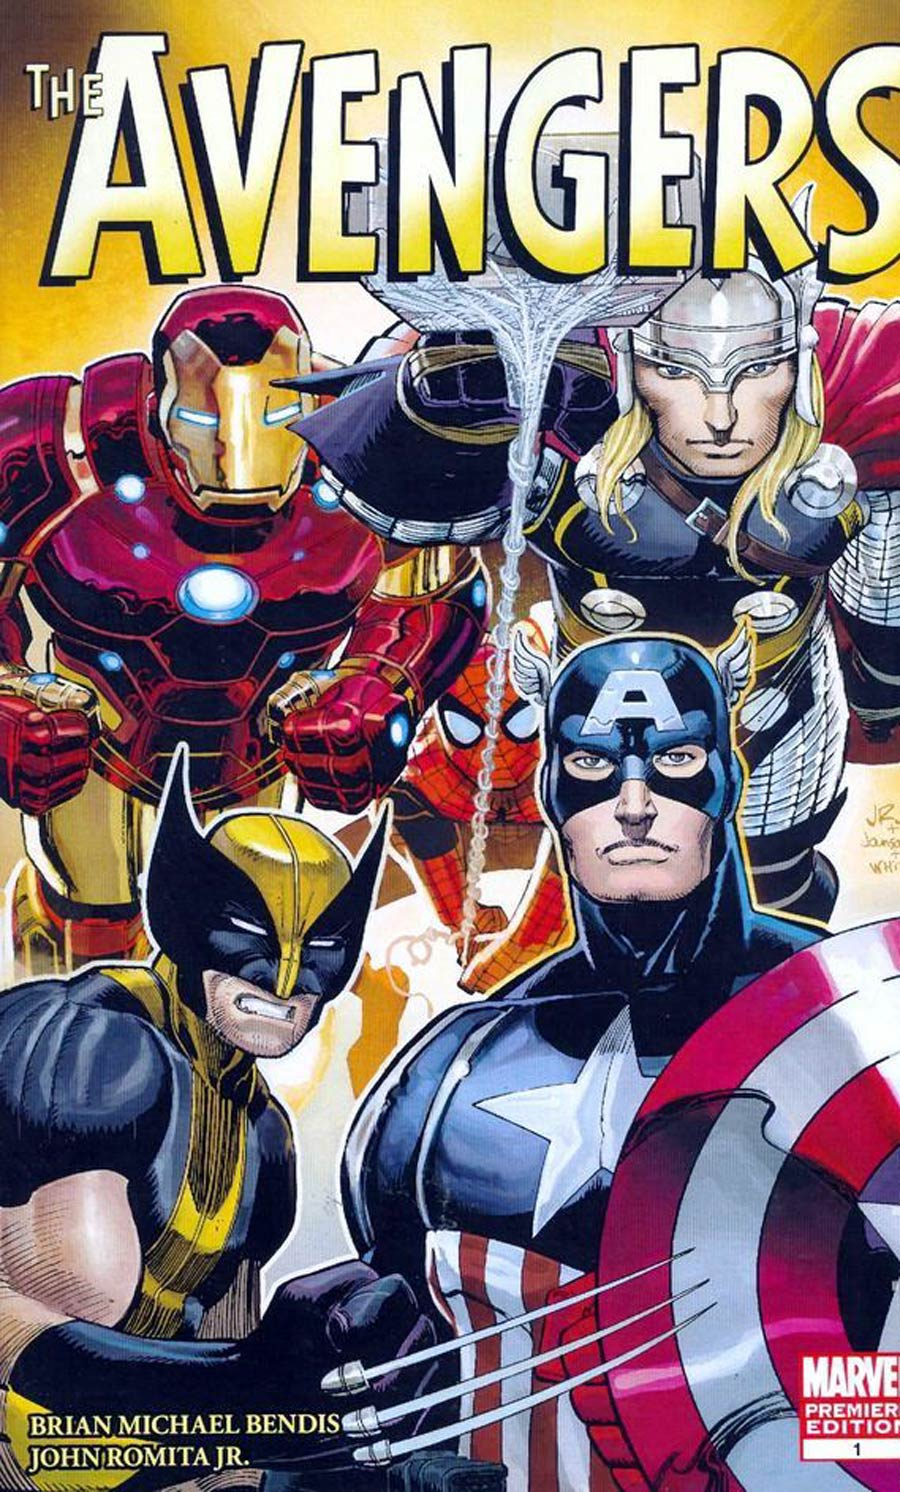 Avengers Vol 4 #1 Cover E Incentive Retailer Edition John Romita Jr Variant Cover (Heroic Age Tie-In)